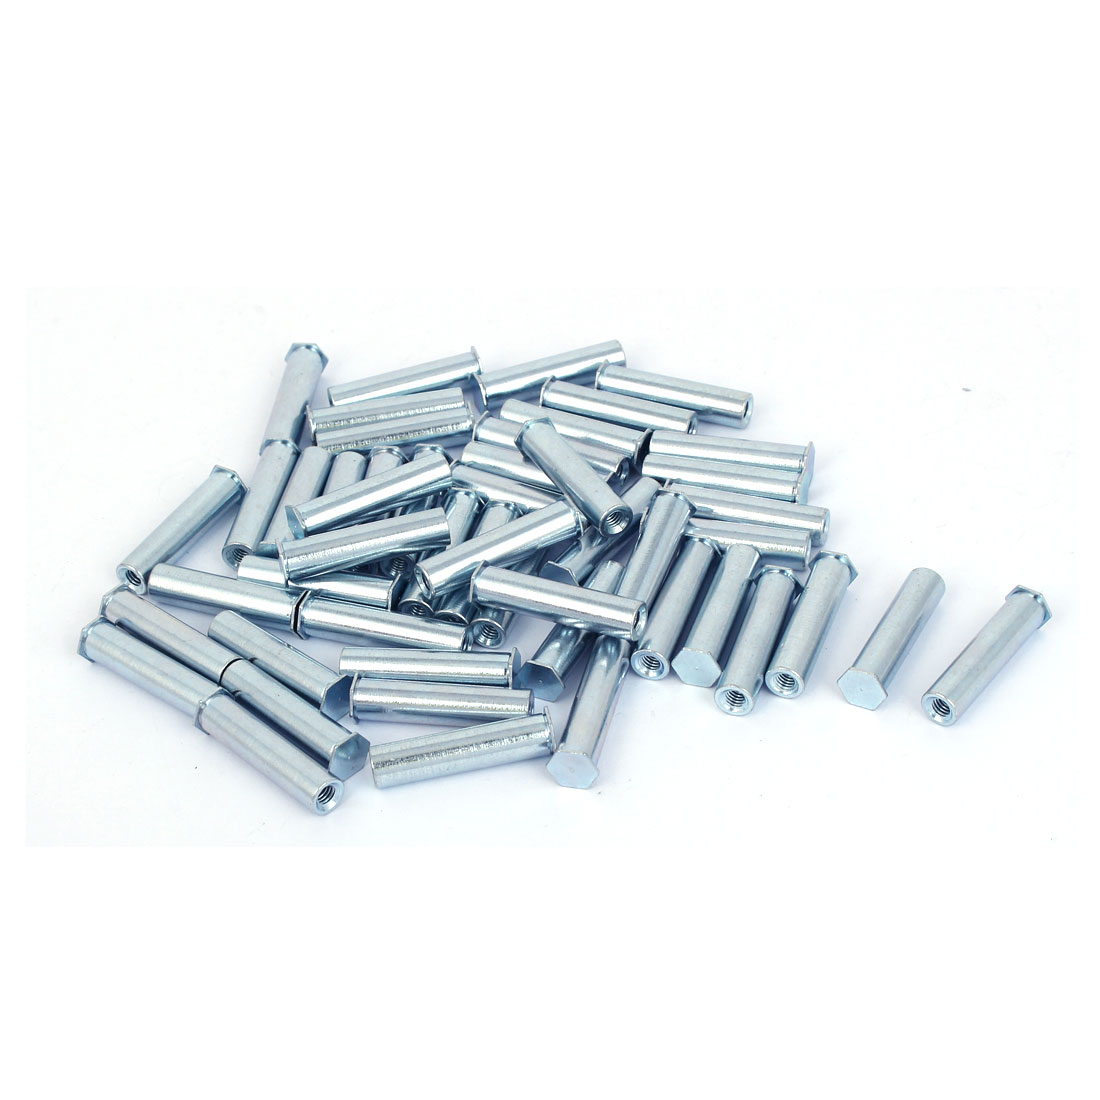 Carbon Steel Zinc Plated Hex Head Full Thread Self Clinching Standoff Silver Tone M4x30mm 50pcs